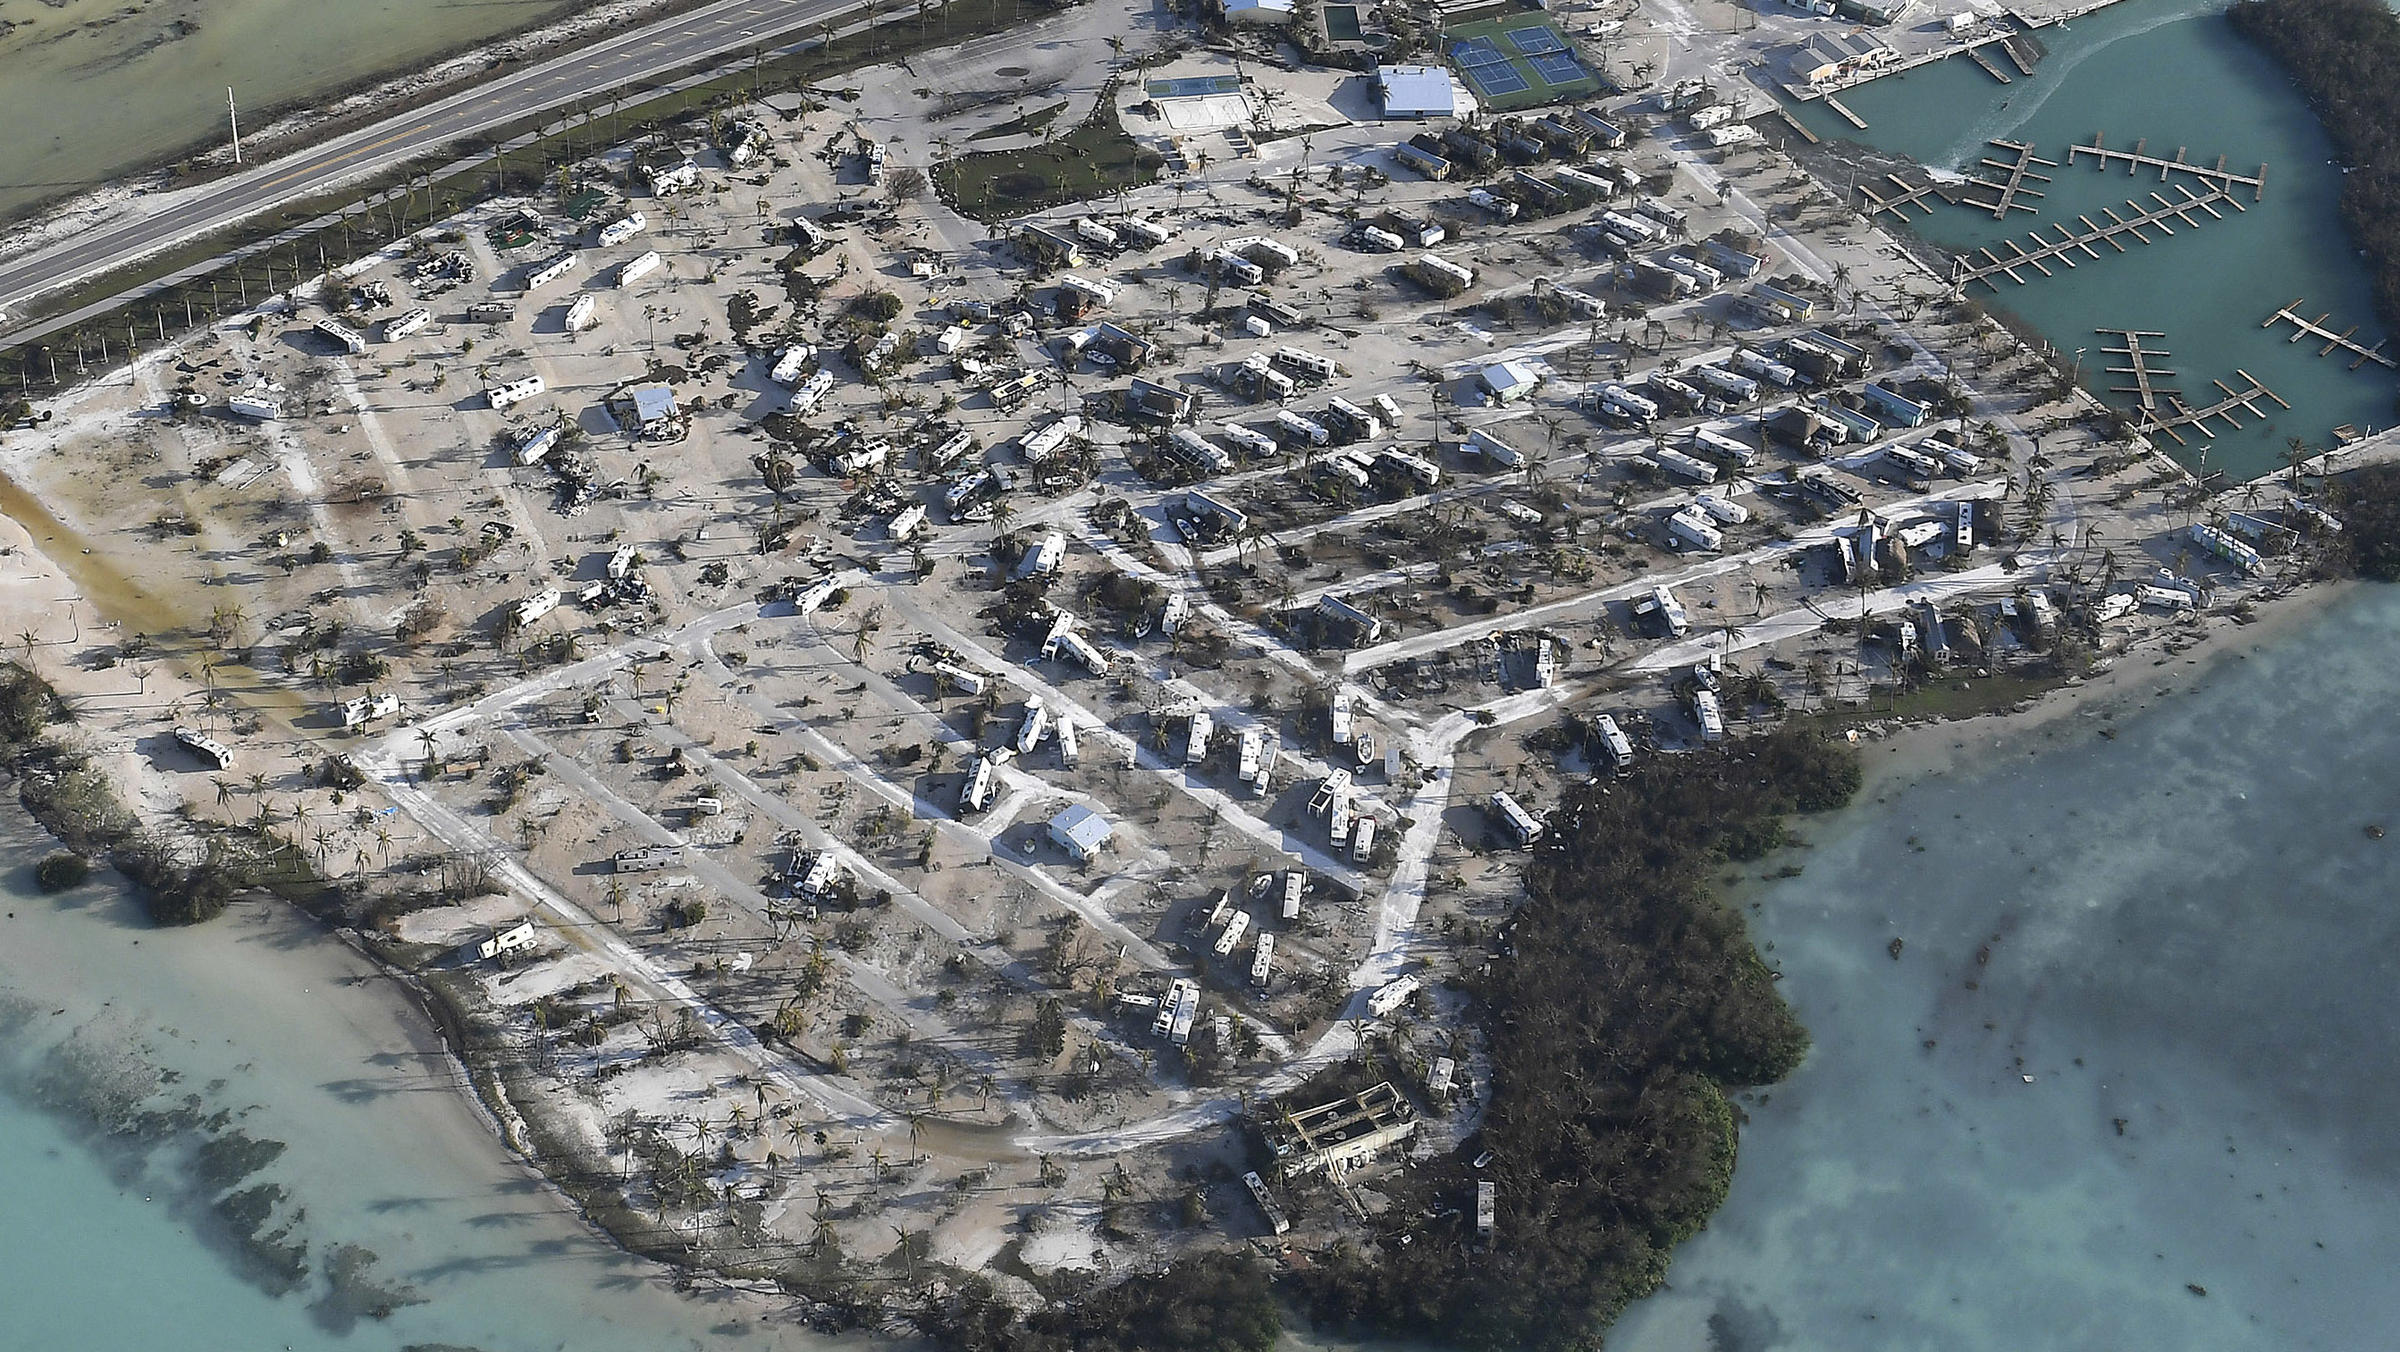 After Heavy Damage Florida Keys Residents Anxiously Wait Return Home in addition Tiny Mobile Homes as well Big Rig Driver Flees After Deadly Pickup Truck Crash further Ham Radio Mast Tilt also Tunein. on trailer mobile radio station